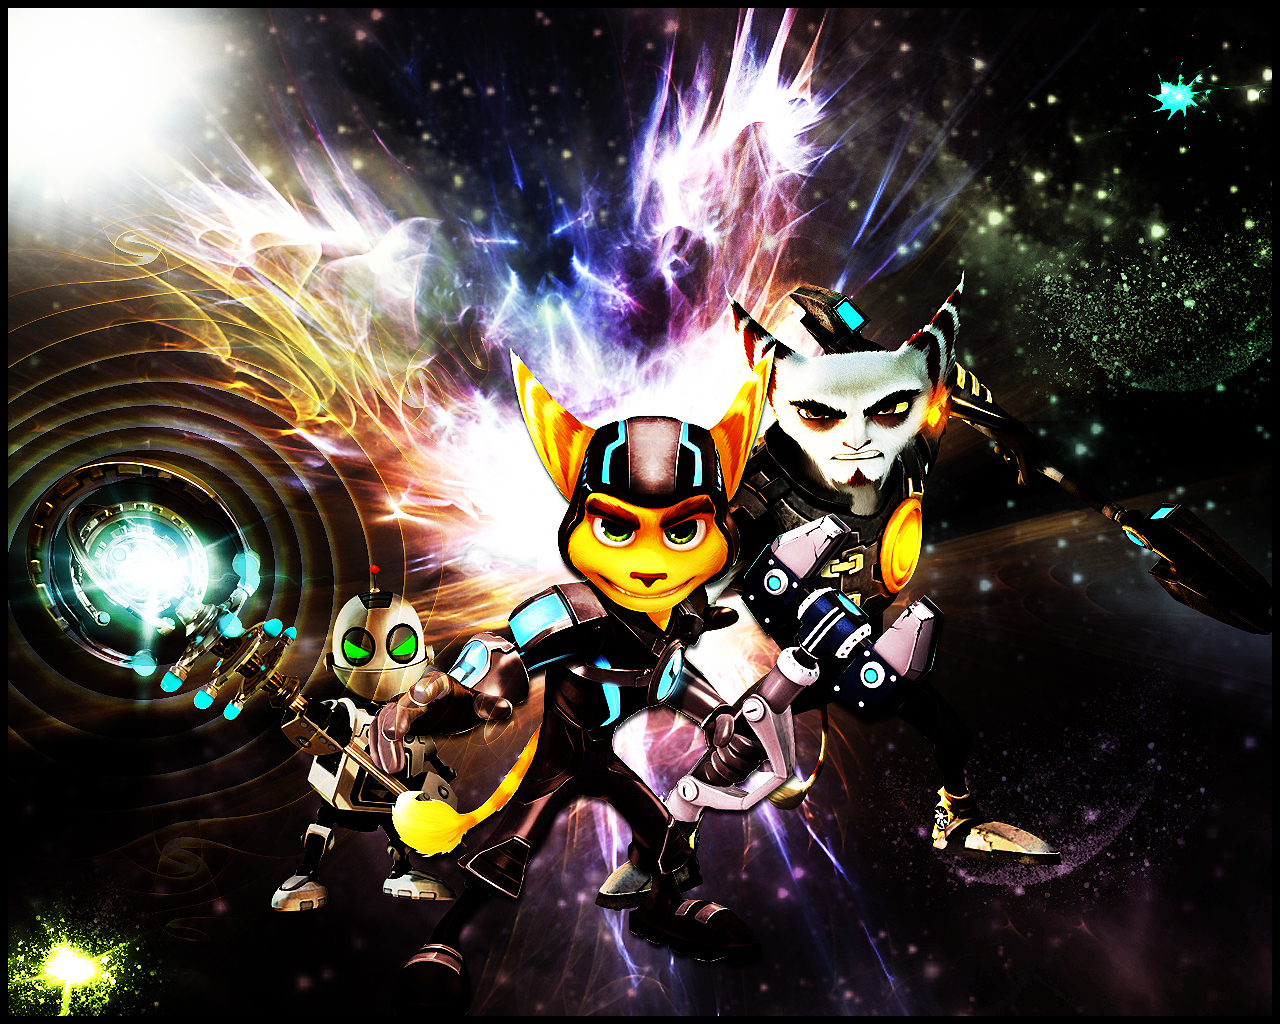 Ratchet And Clank By Xile876 On DeviantArt